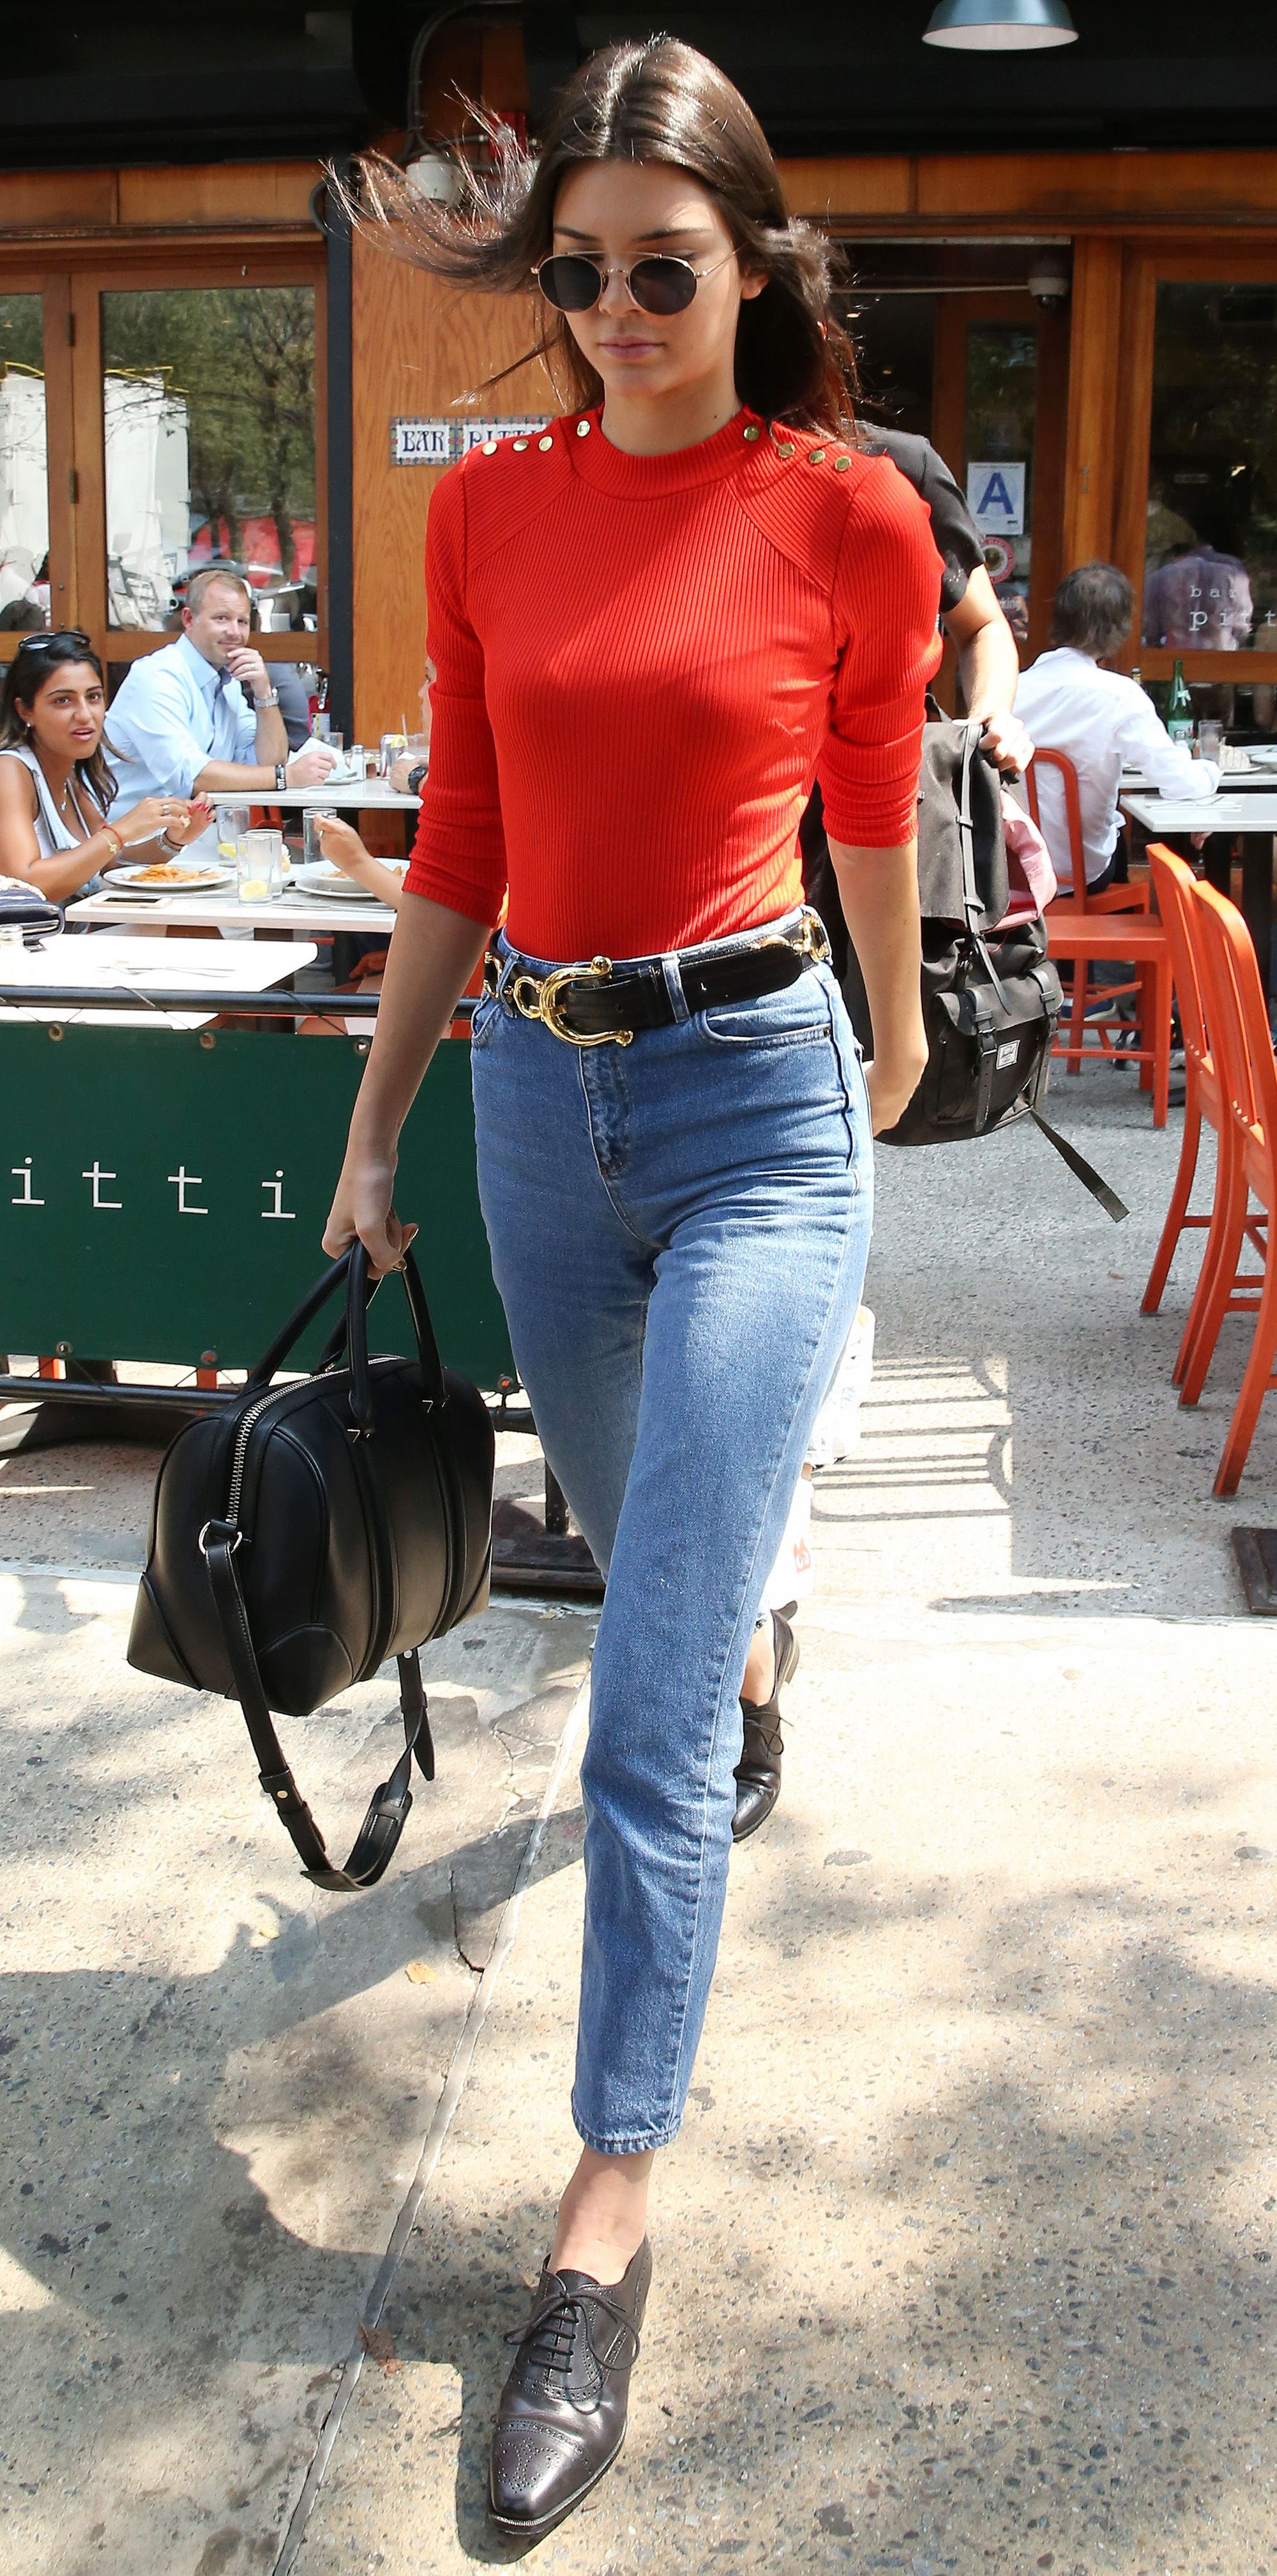 Look of the Day - September 3, 2015 - Model Kendall Jenner, wearing jeans and orange top, eats lunch at Bar Pitti in New York City from InStyle.com